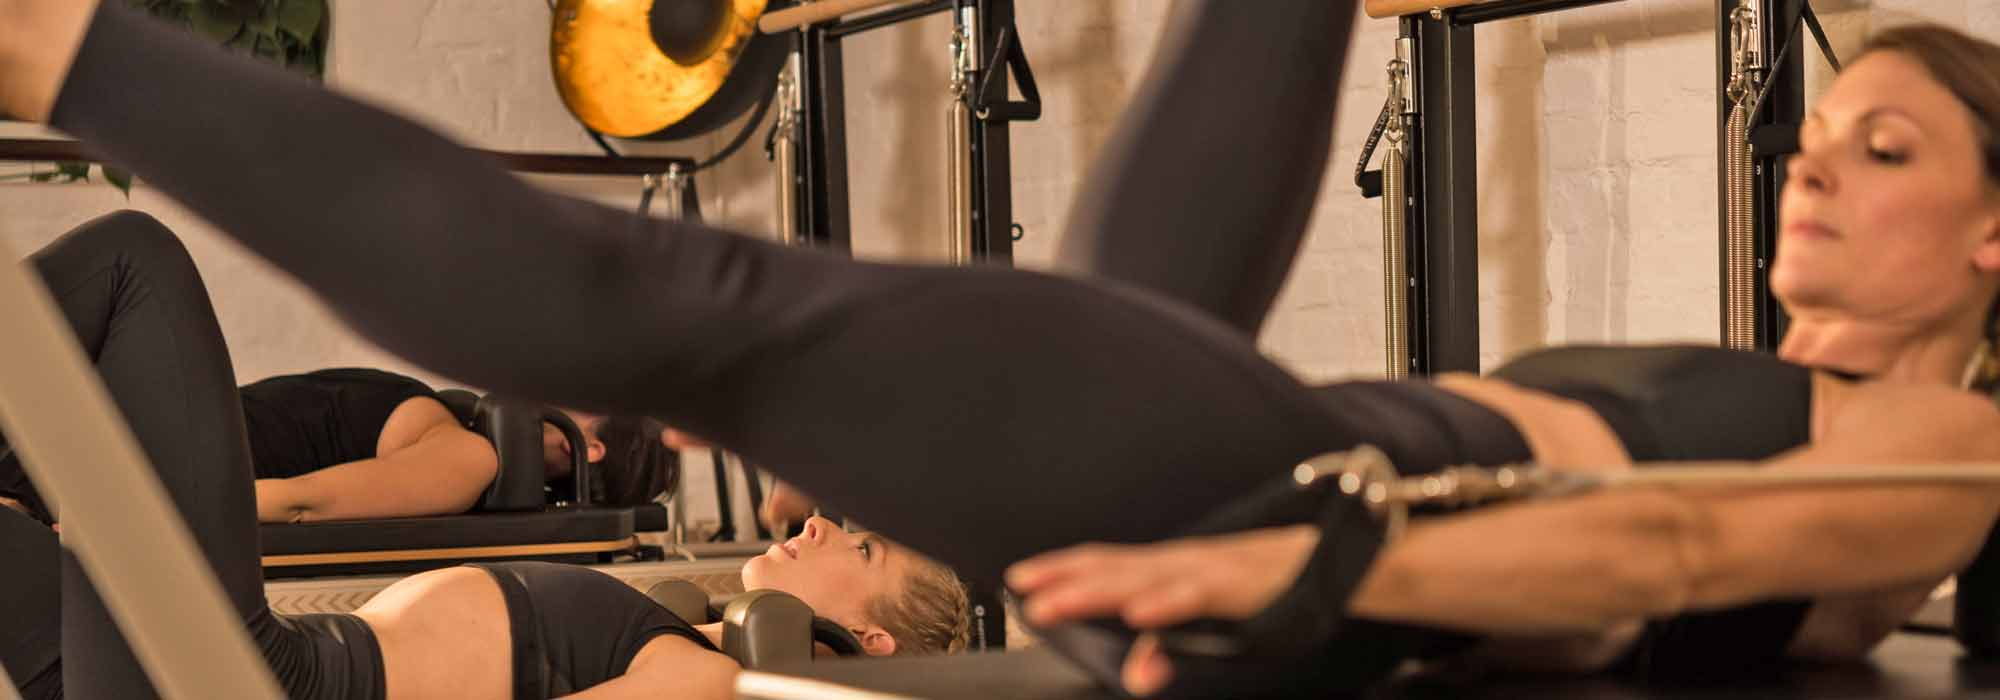 The_Pilates_Movement_Studio_Startslider_Isabelle